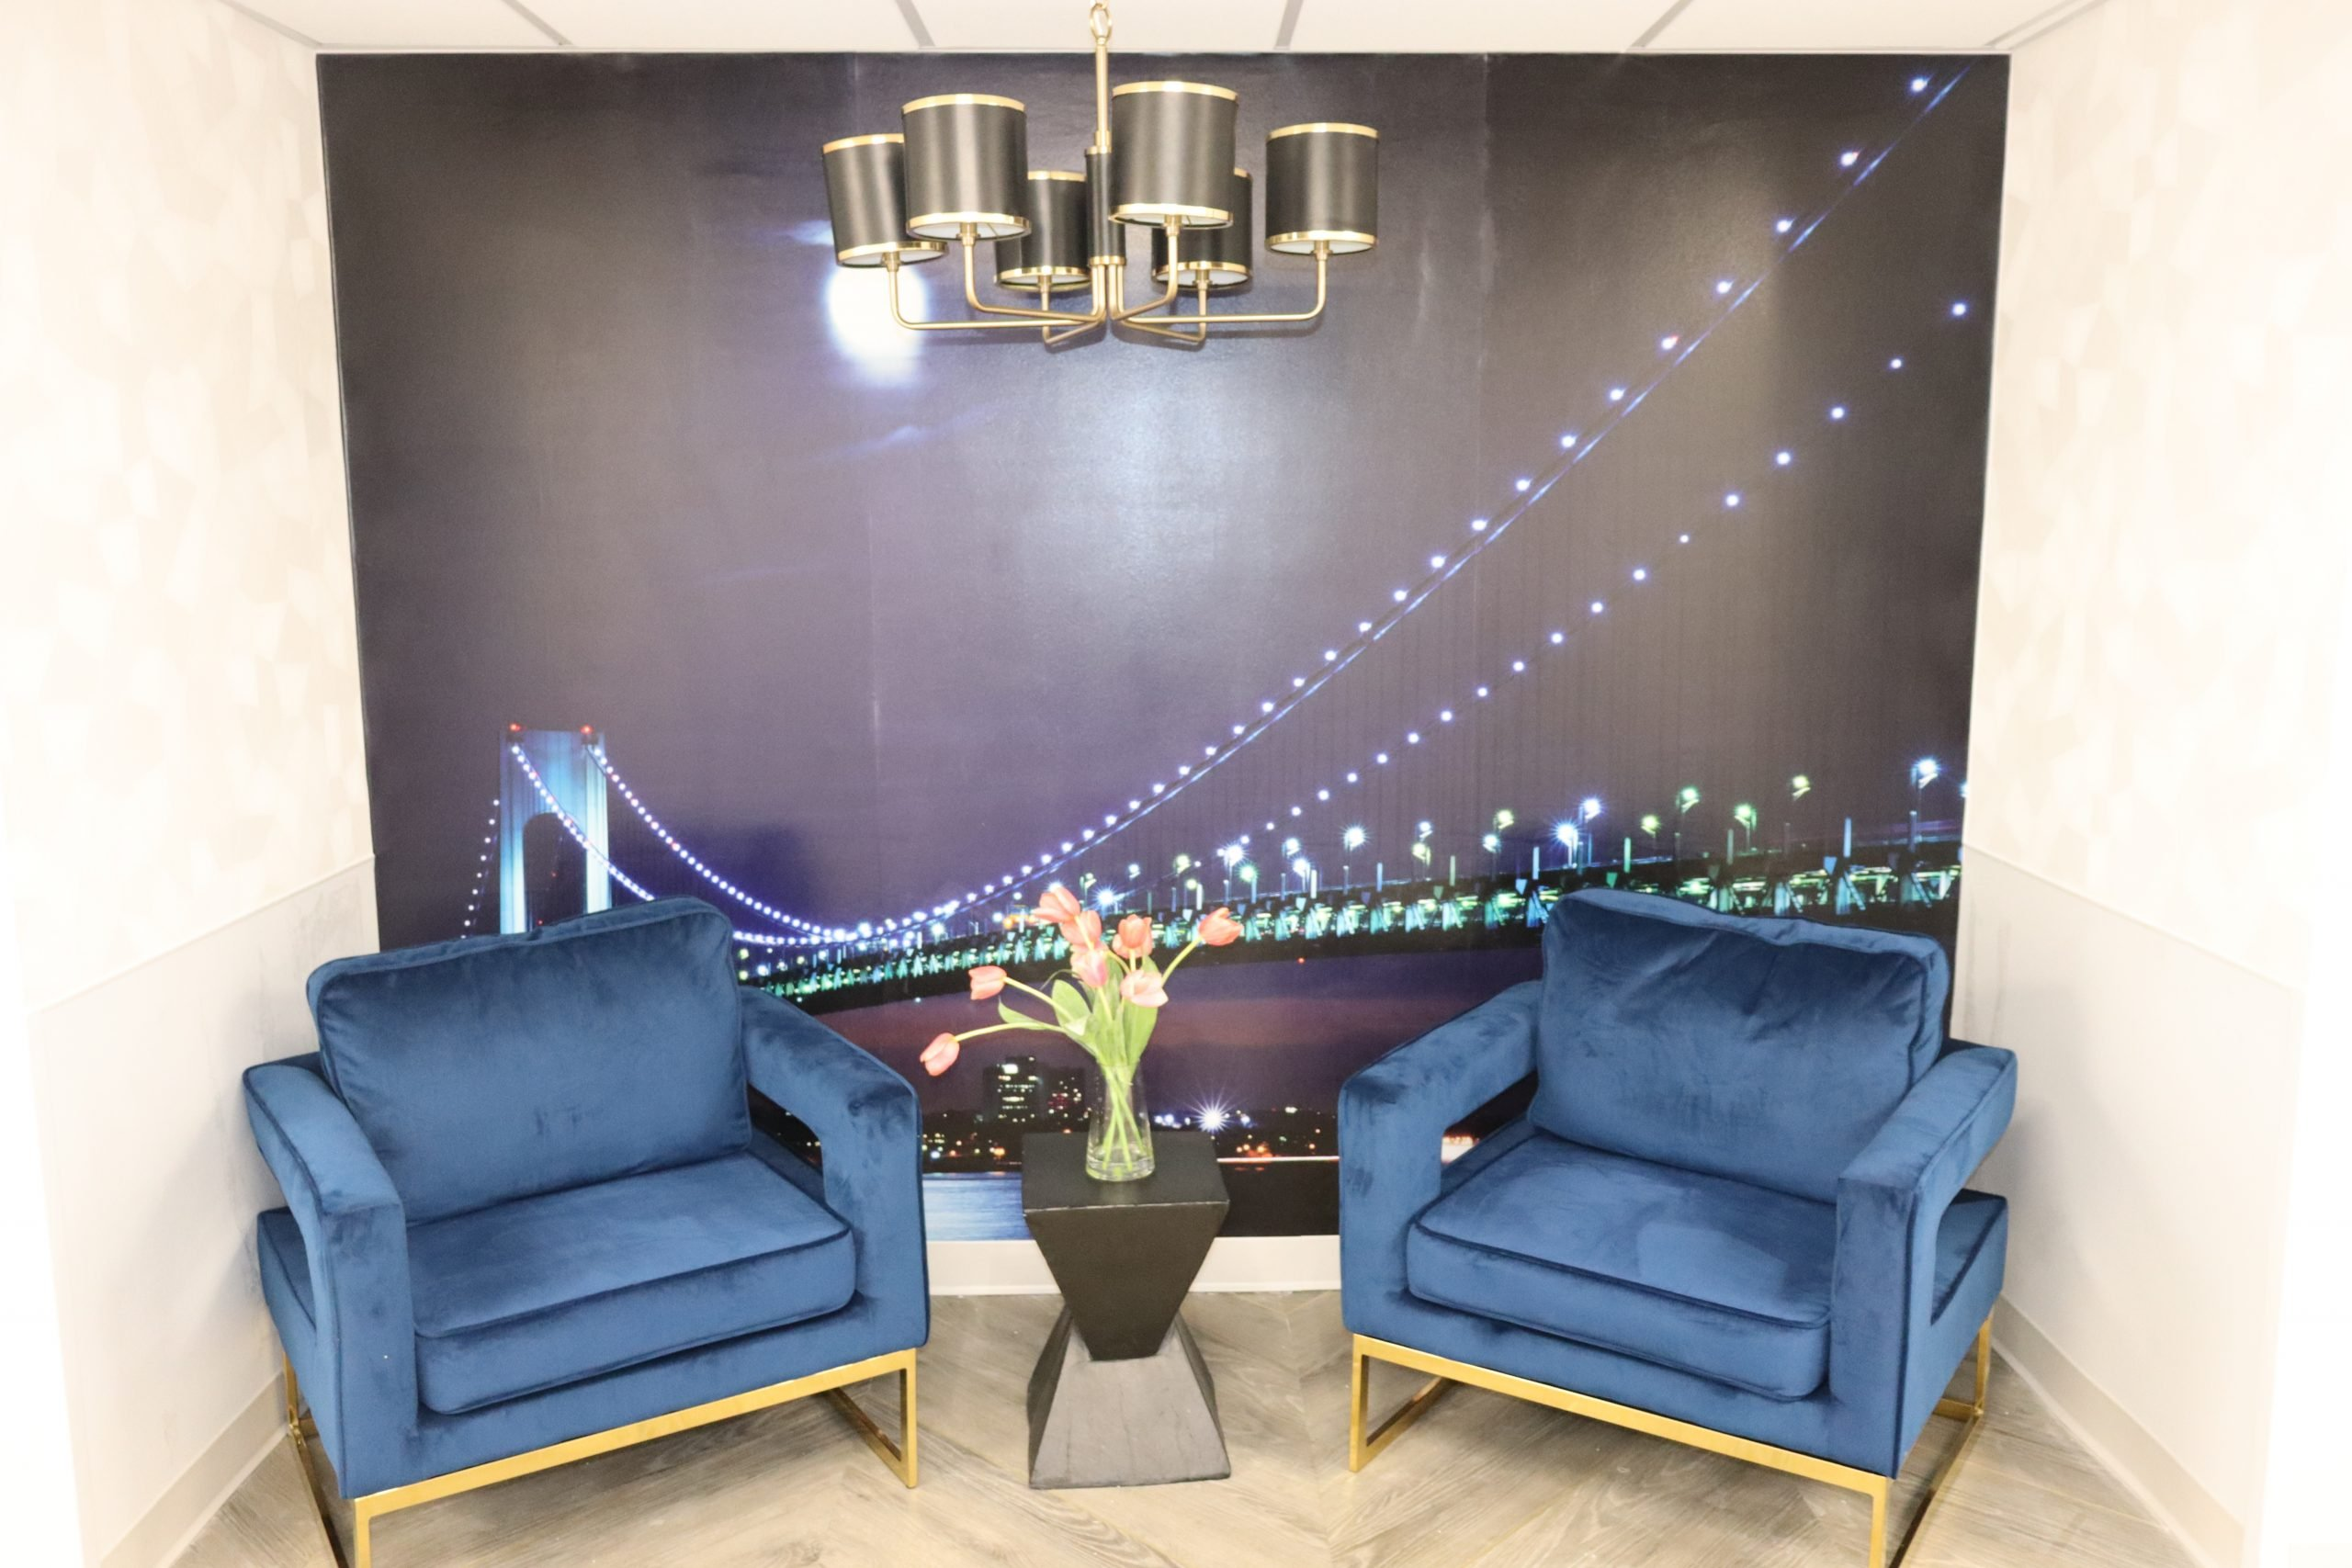 Lobby with blue chairs